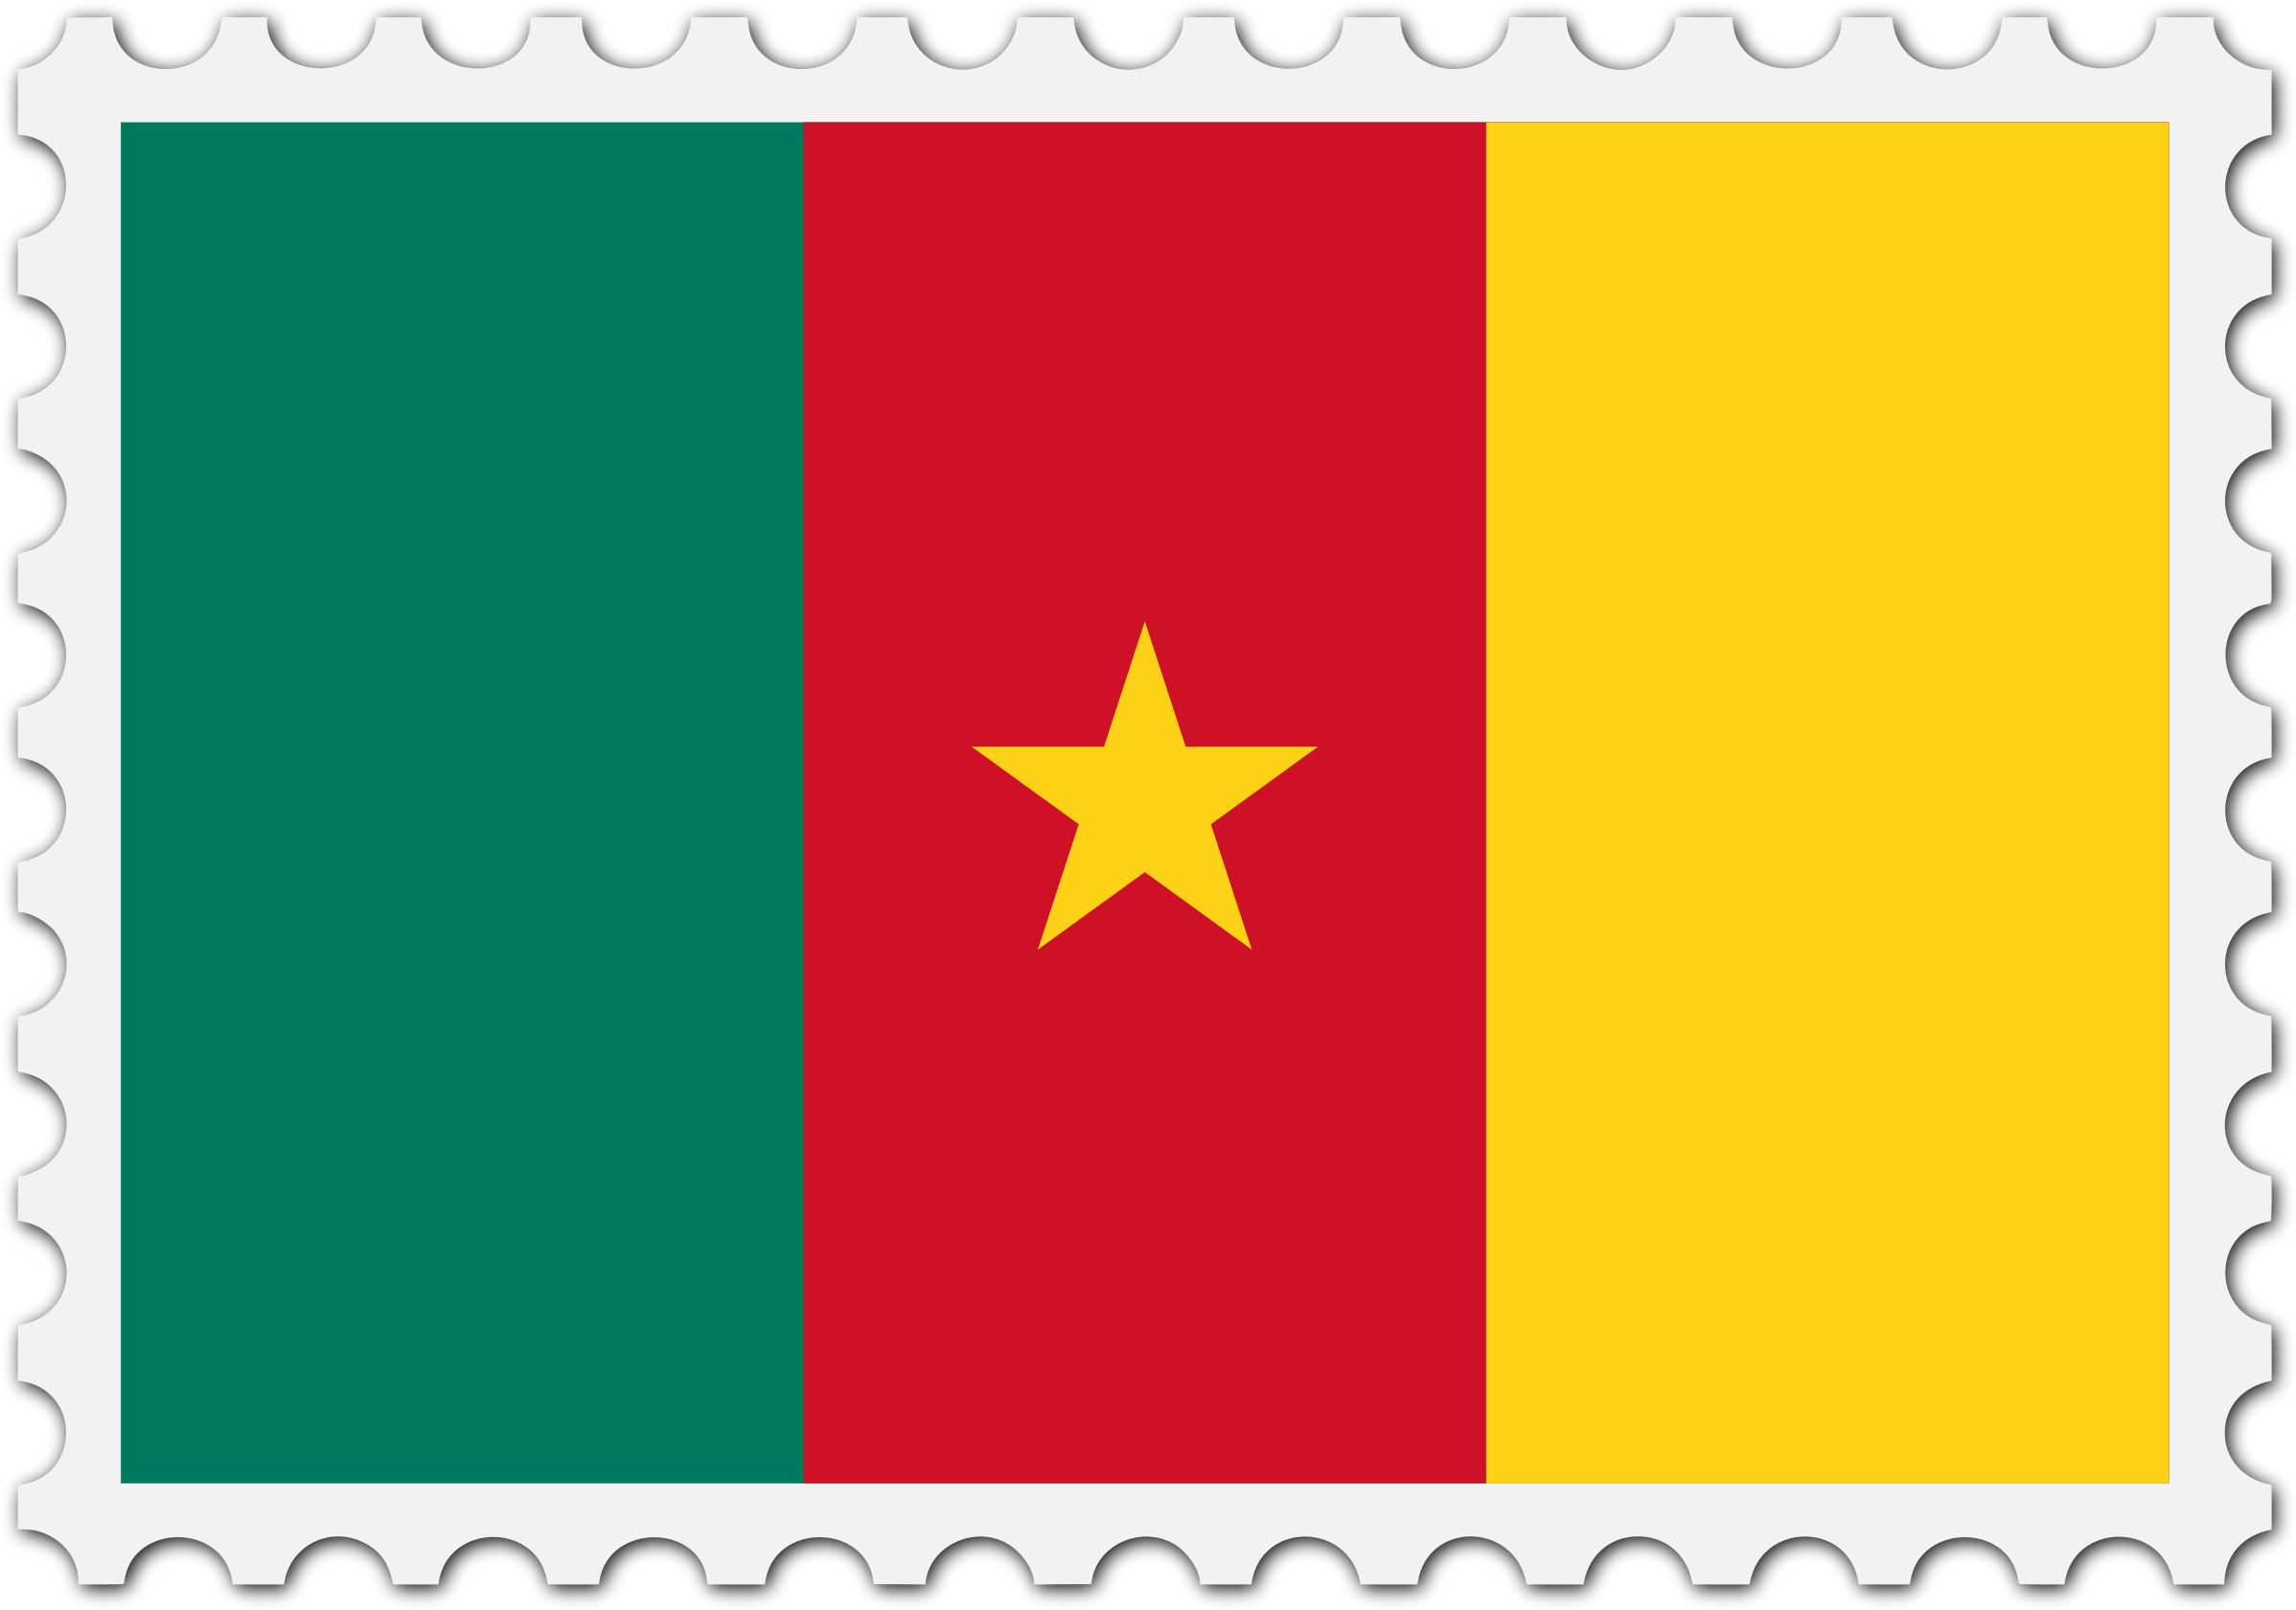 Cameroon flag stamp by Firkin